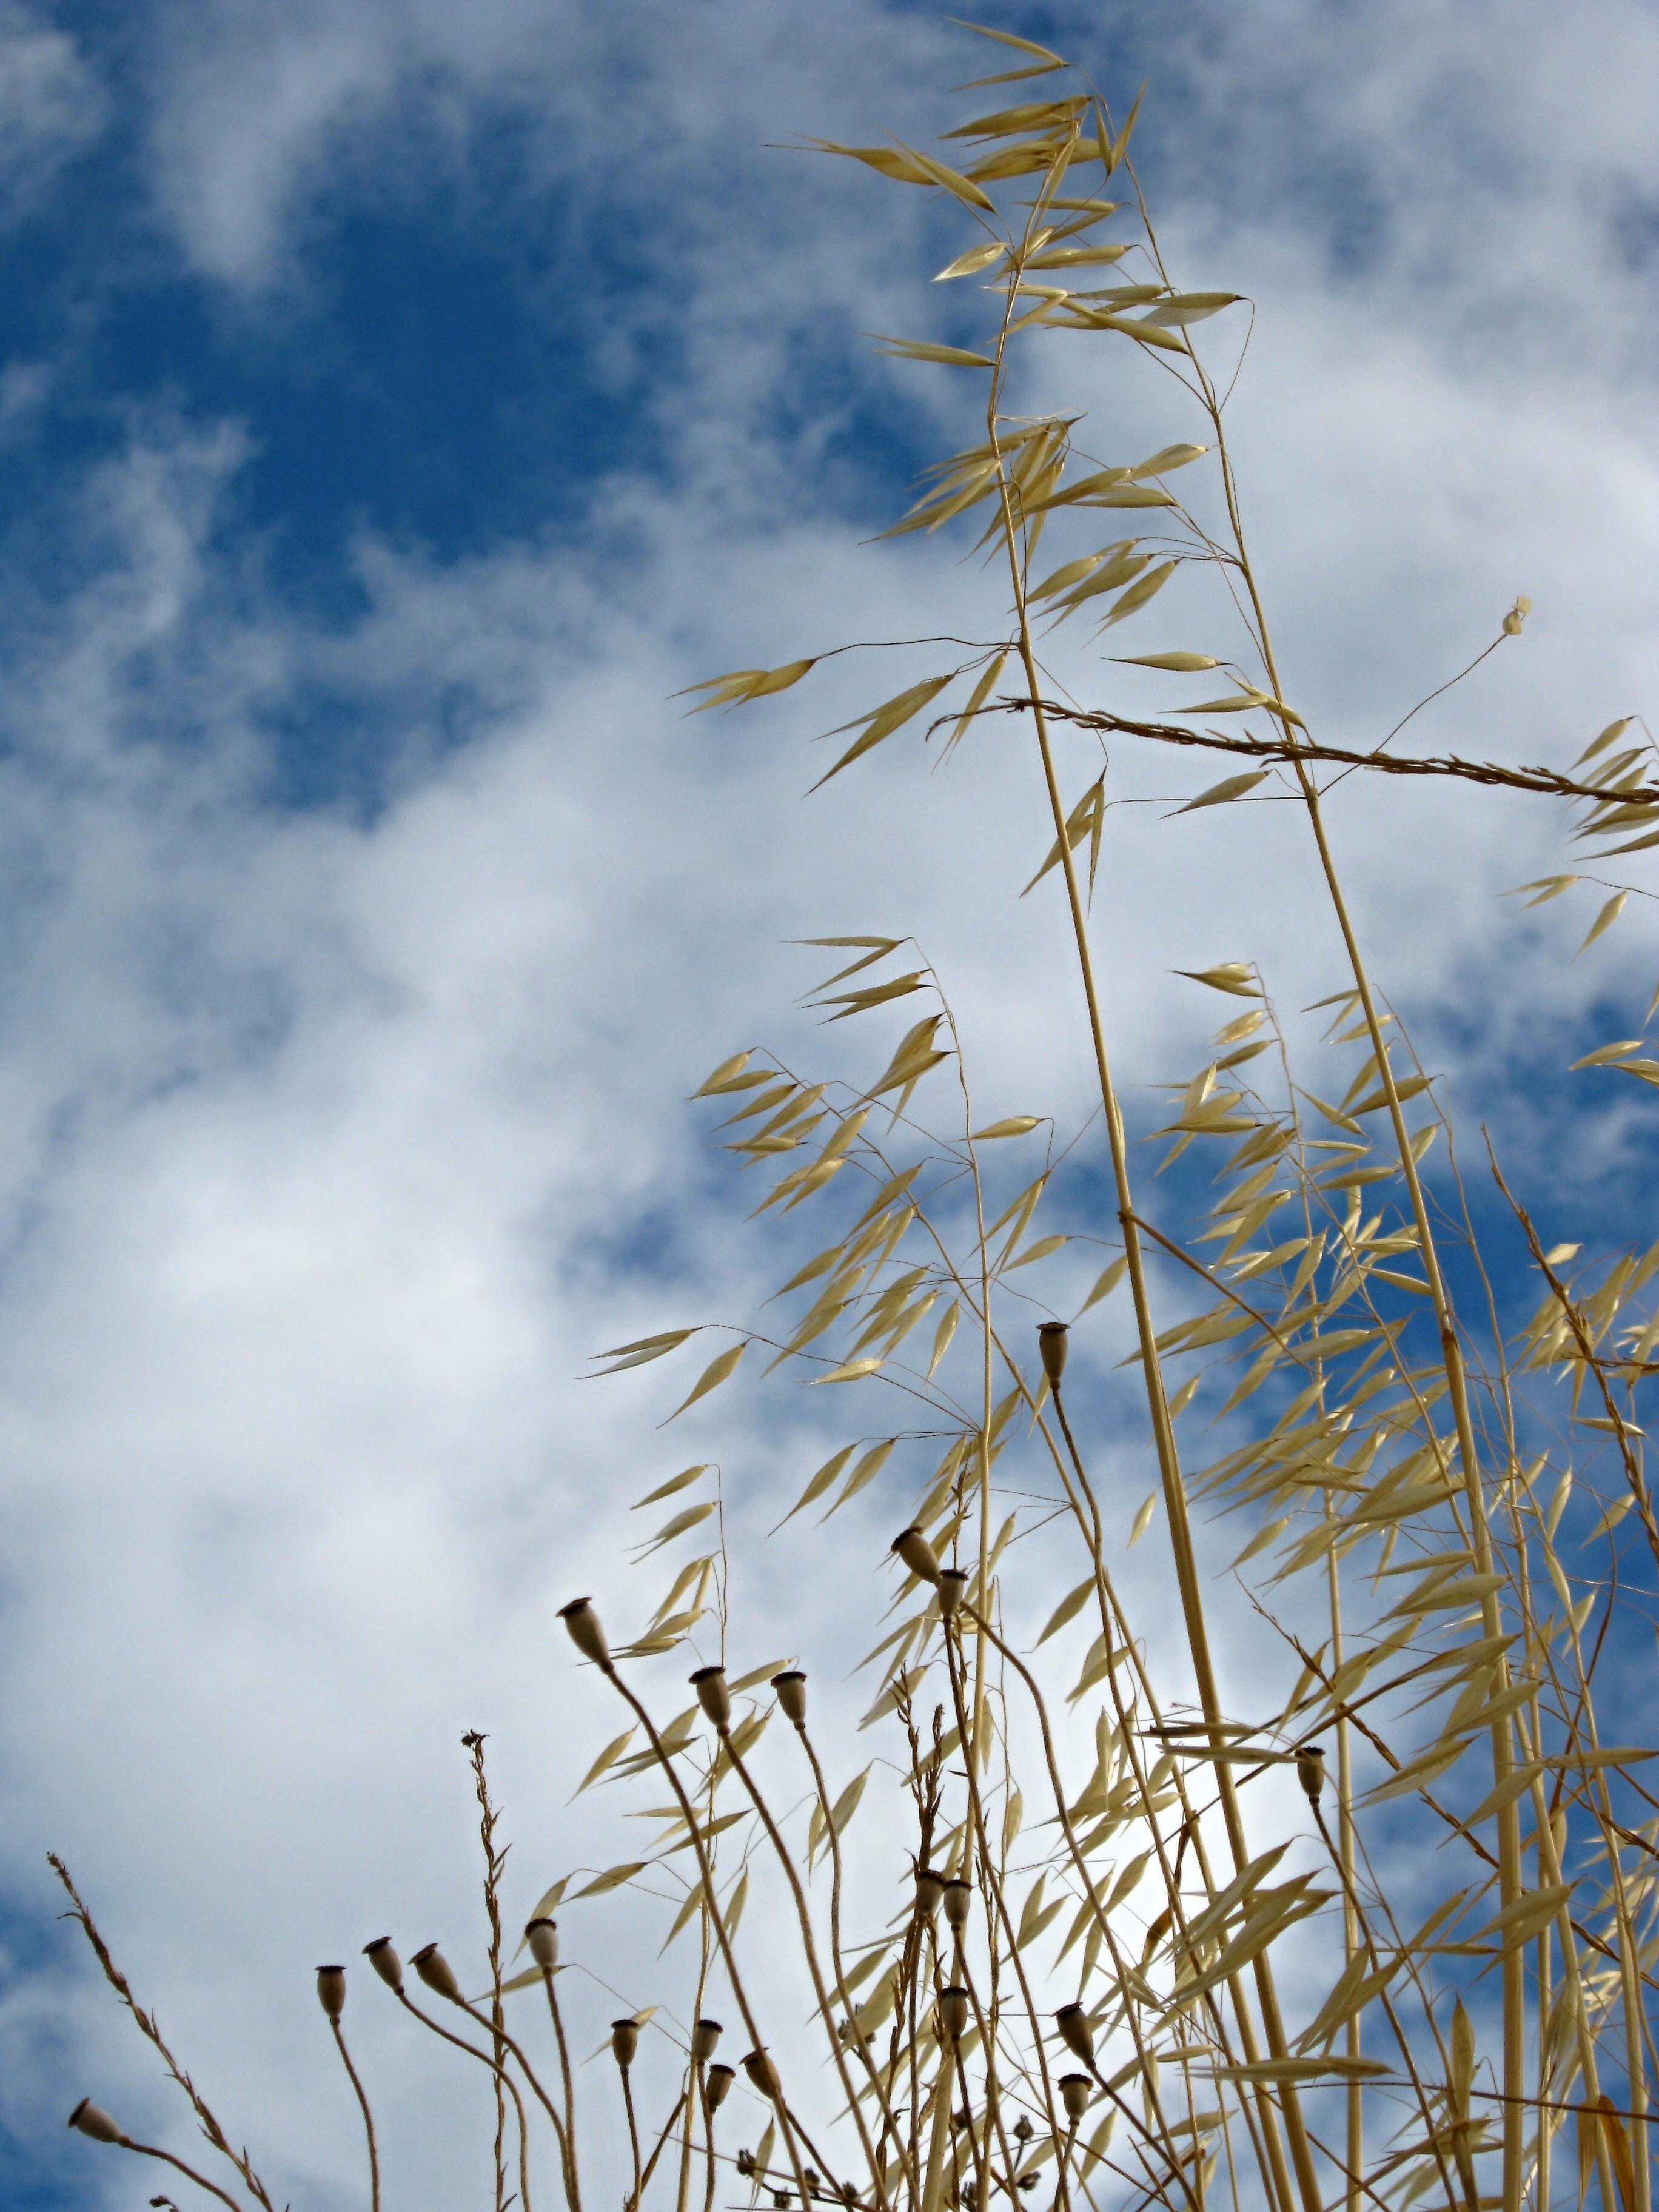 Old grass, Sky, Straw, Texture, Hay, HQ Photo